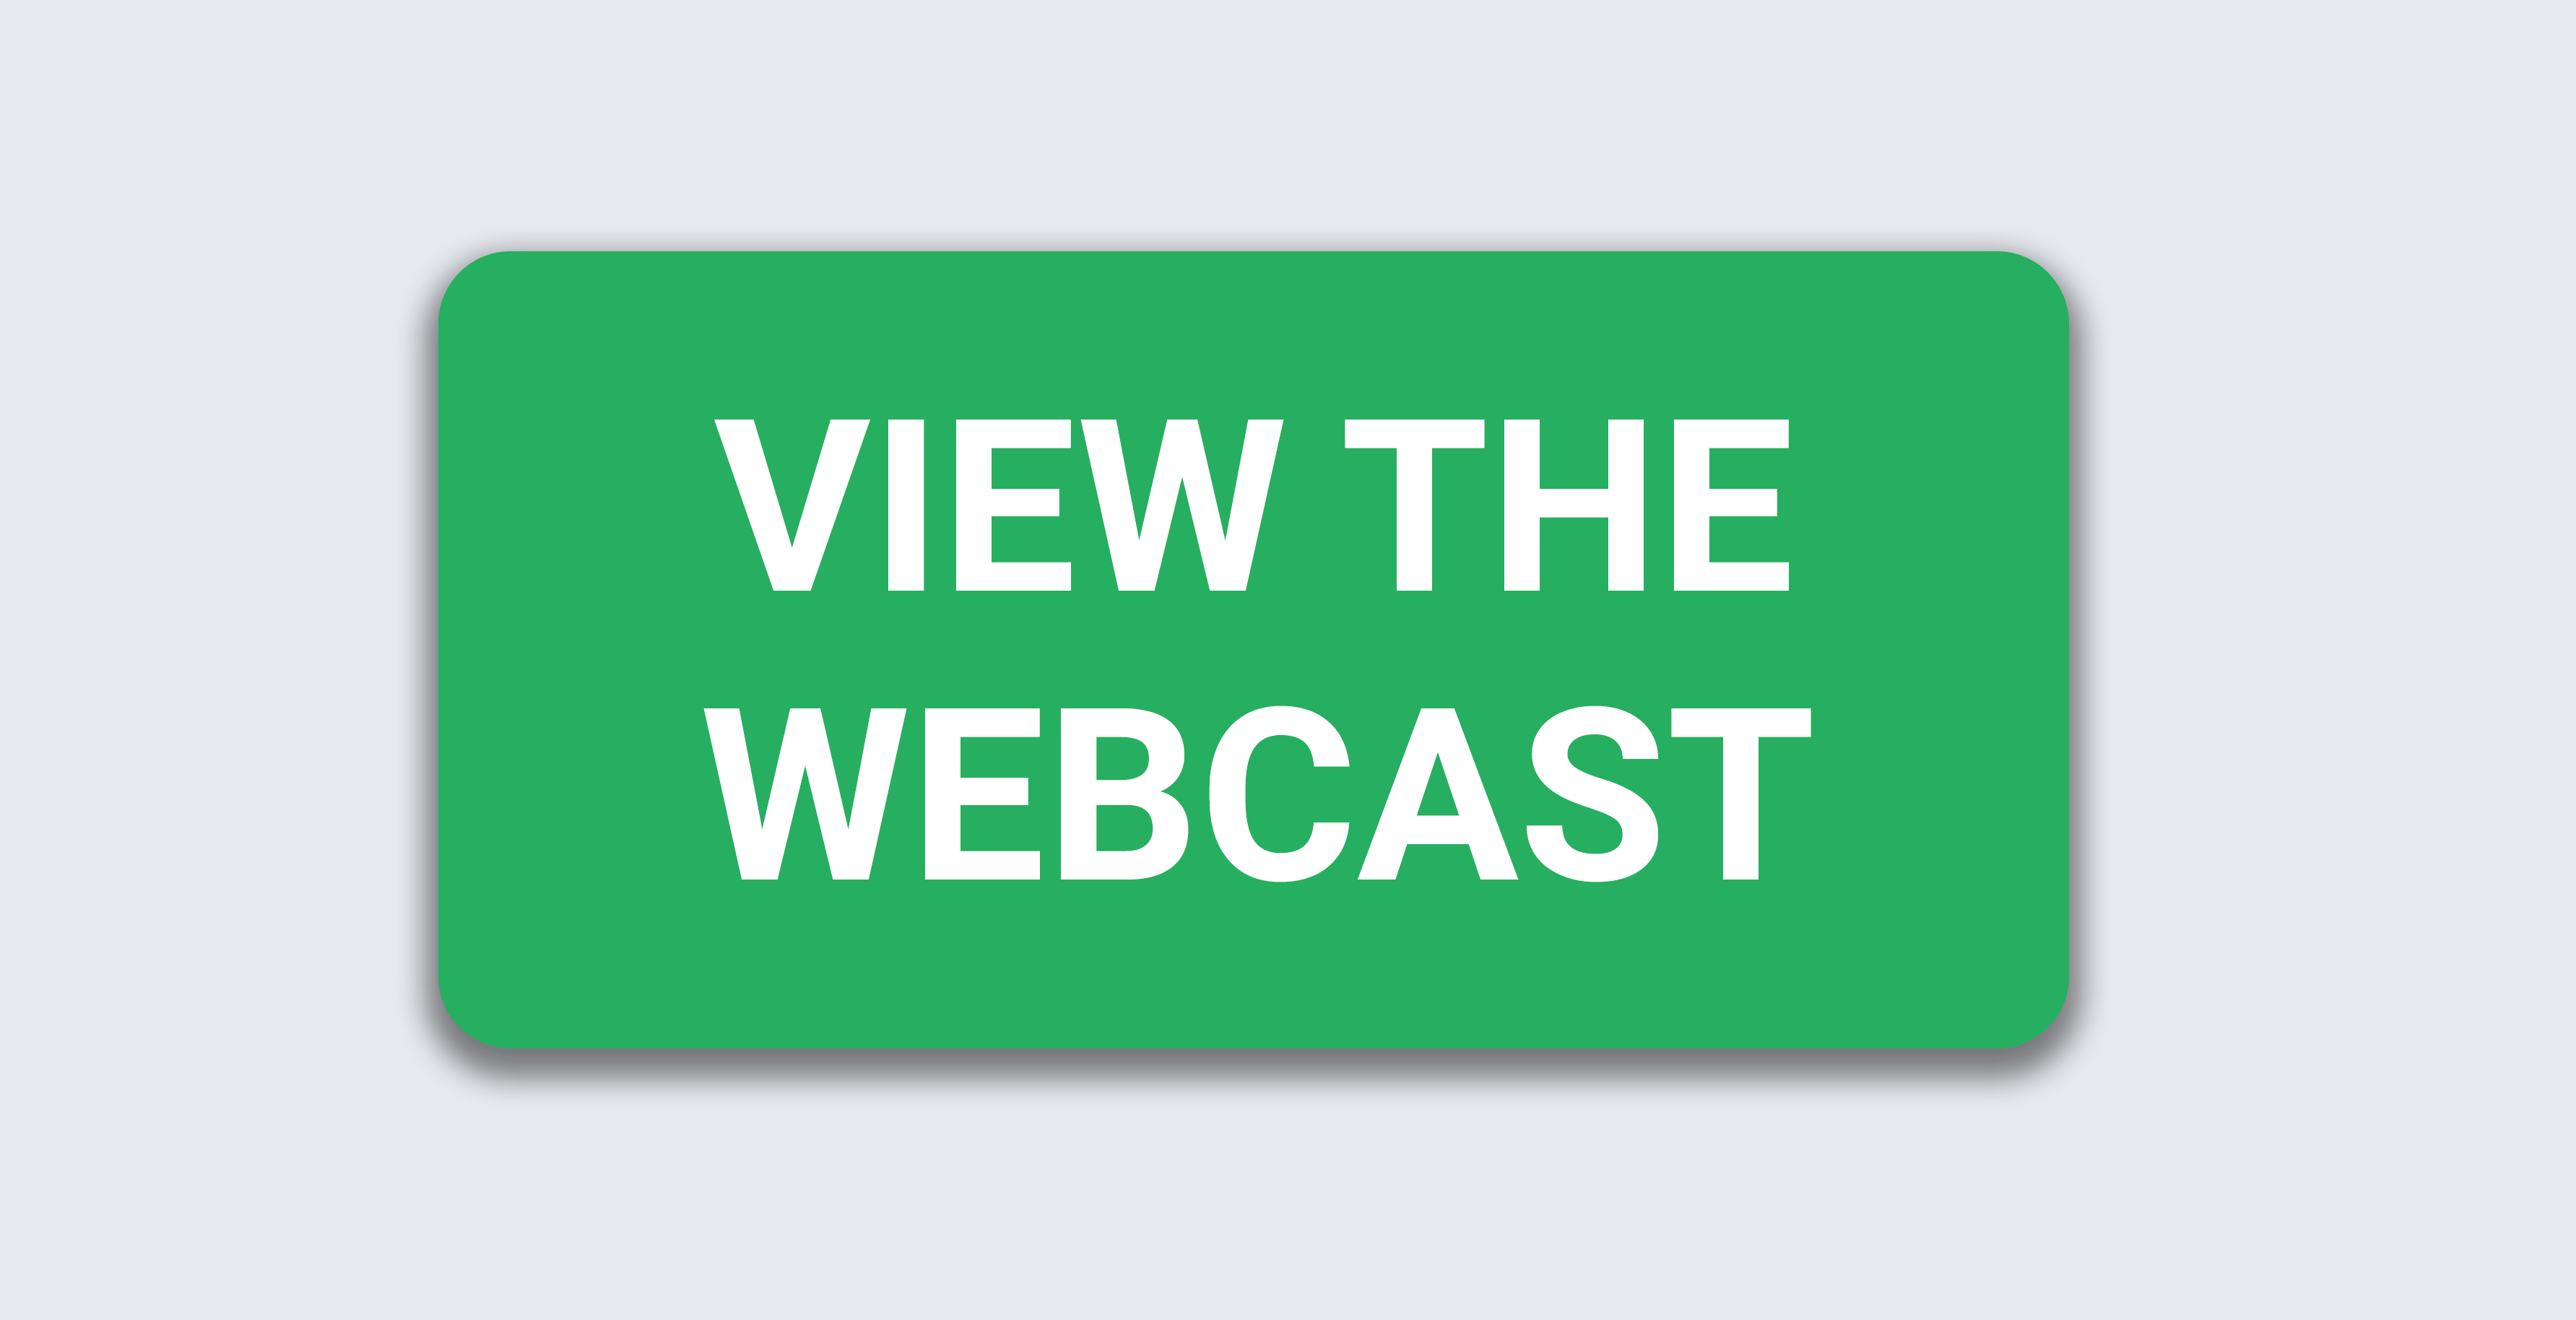 View the Webcast About Educational Equity